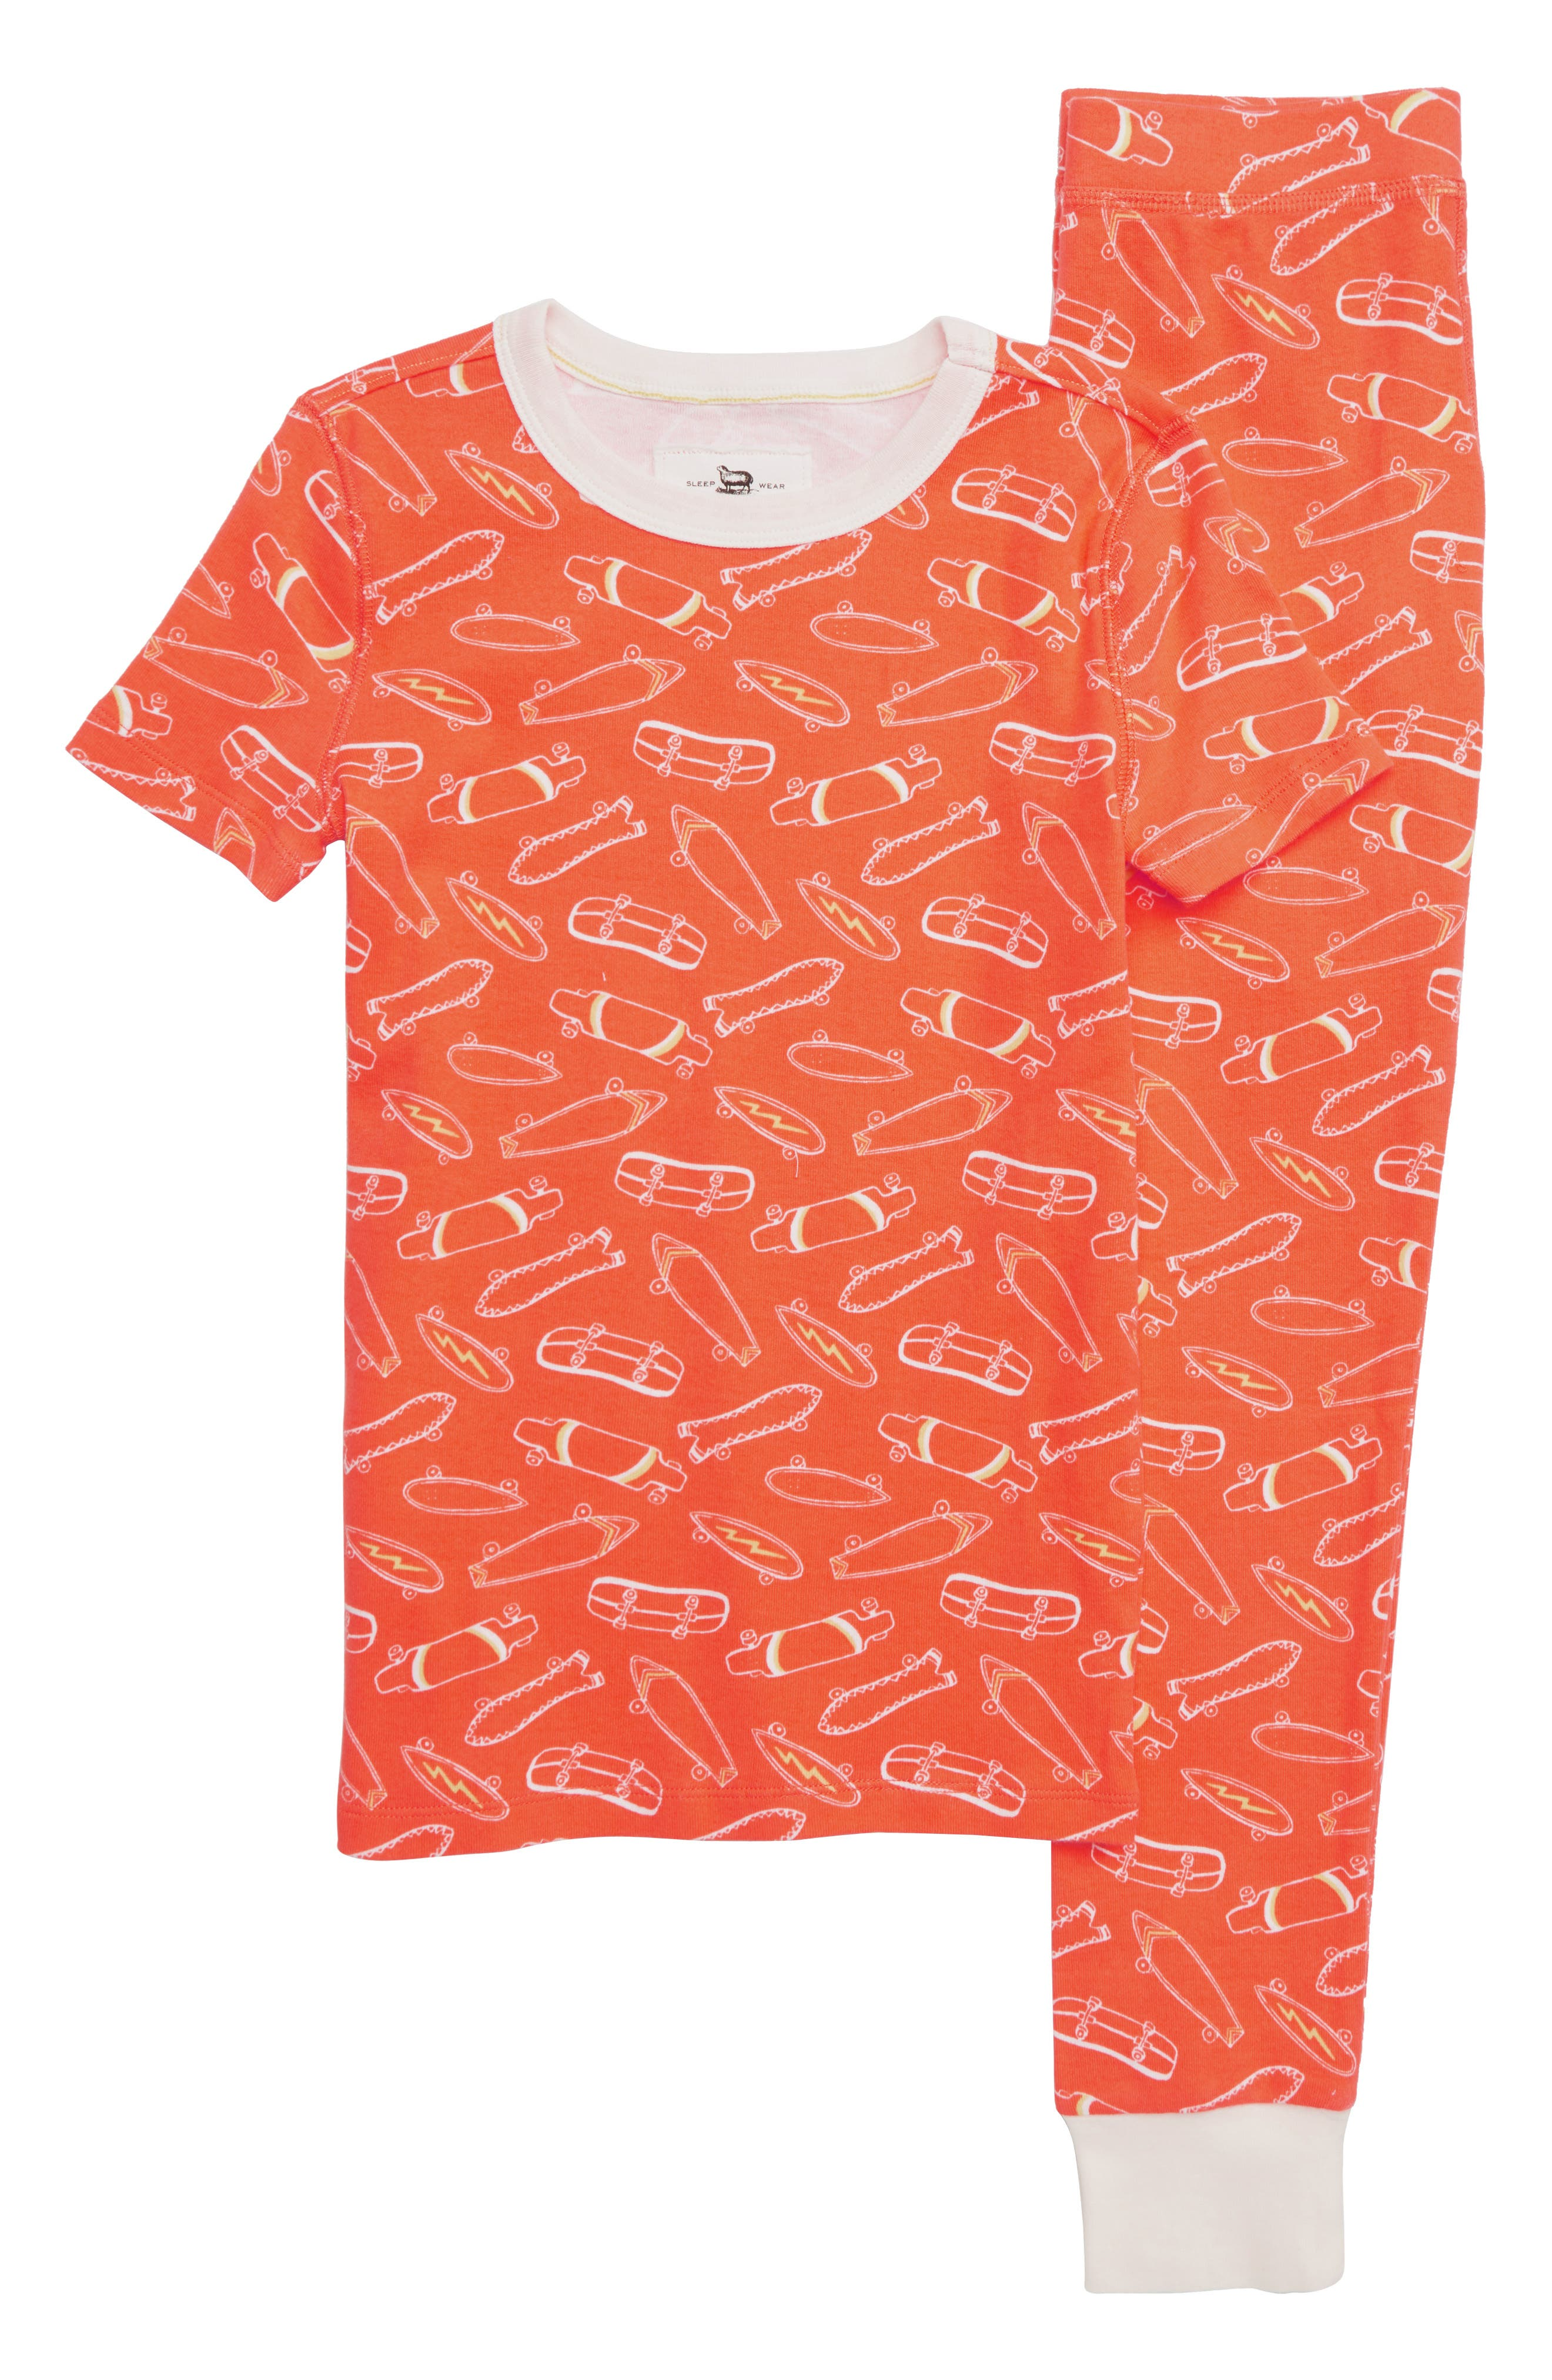 CREWCUTS BY J.CREW Skateboards Fitted Two-Piece Pajamas, Main, color, ORANGE IVORY MULTI